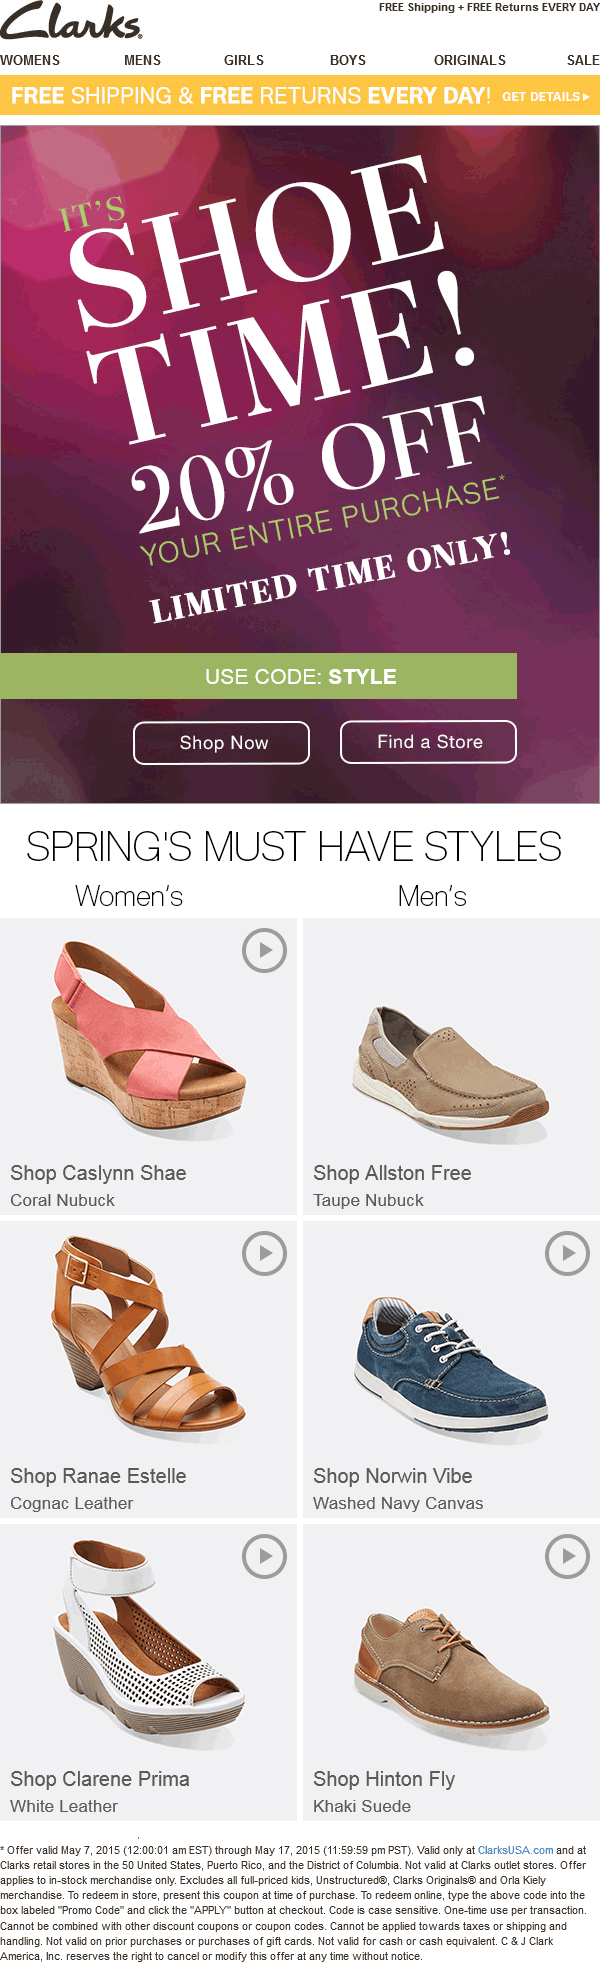 Clarks Coupon January 2018 20% off the shoes at Clarks, or online via promo code STYLE